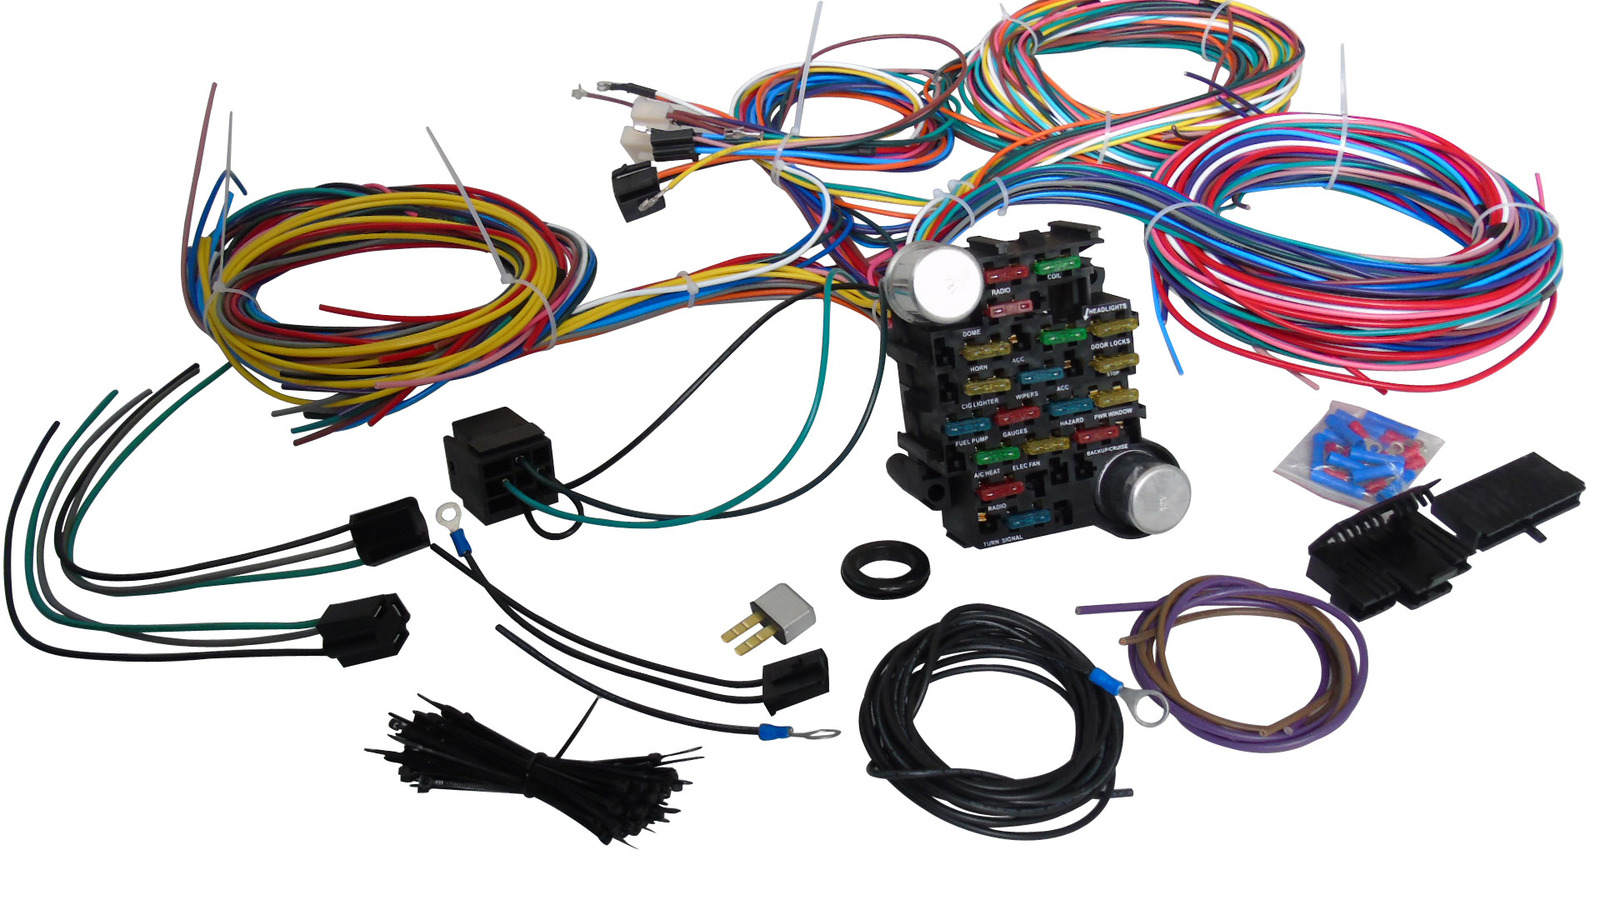 65 Mustang Wire Harness Kit Start Building A Wiring Diagram For Vehicle 73 Ford 21 Circuit Universal Xl Rh Swperformanceparts Net Car